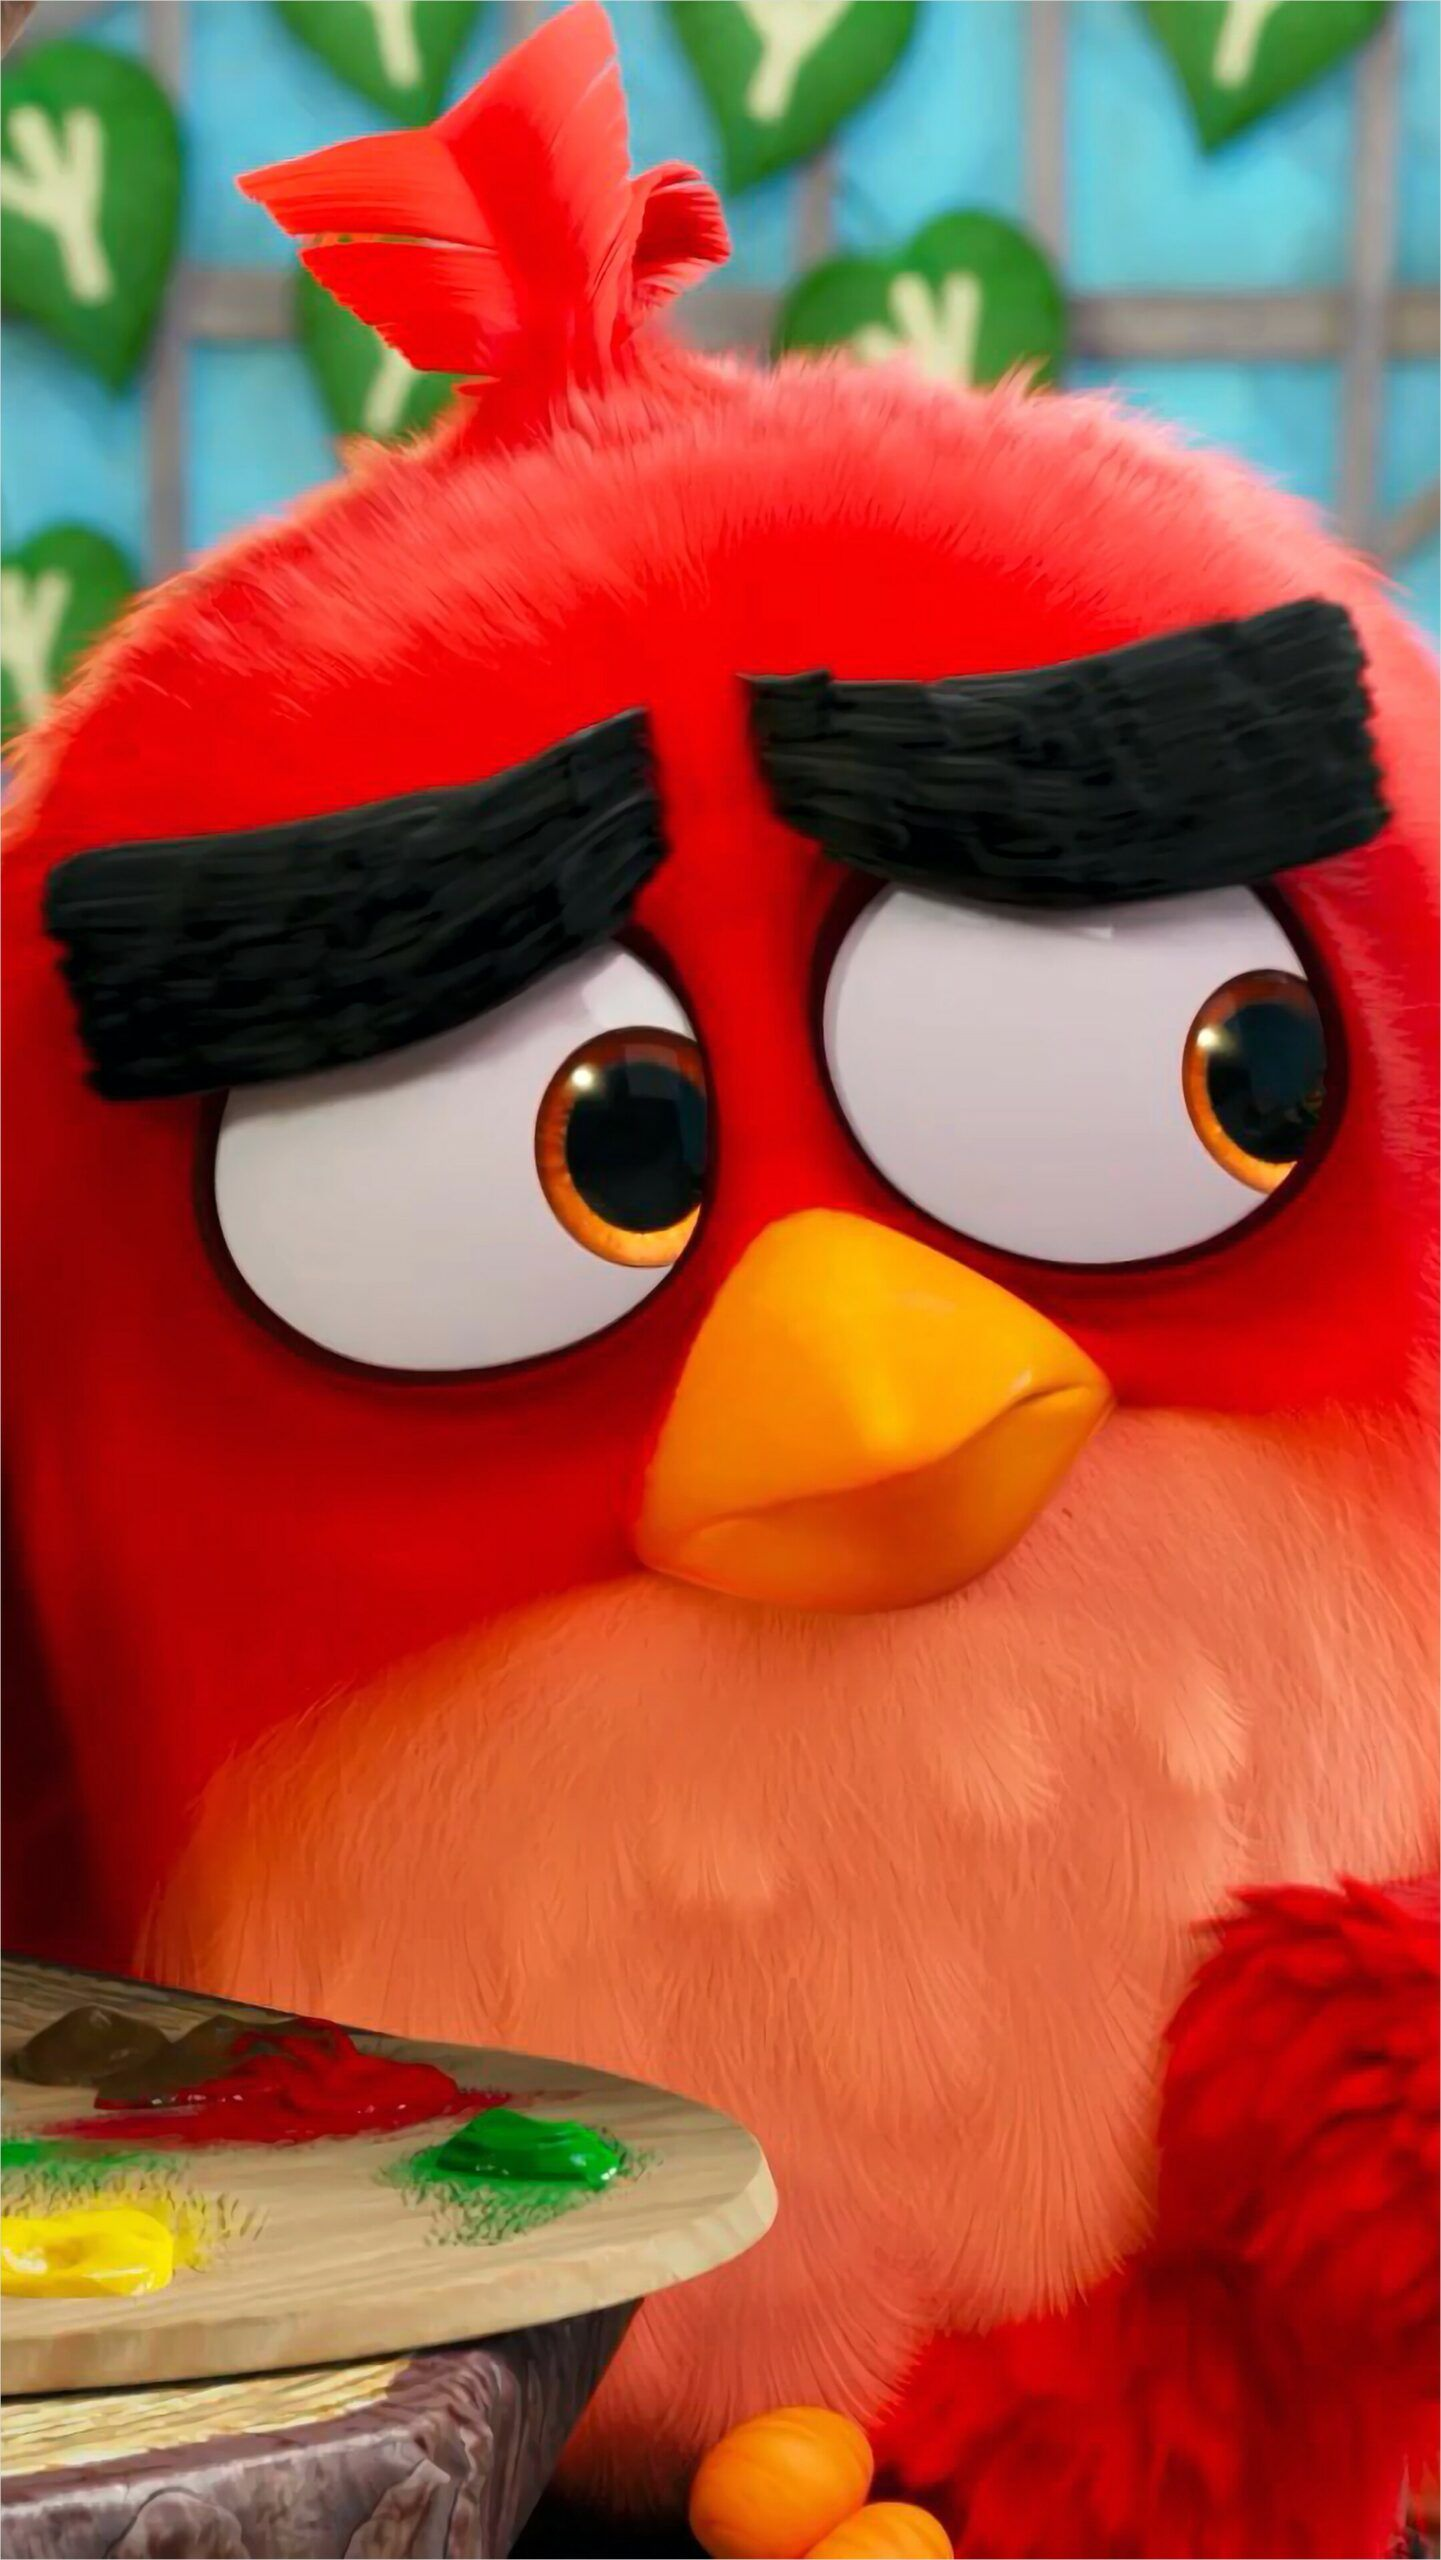 Angry Birds Wallpaper 4k Angry Birds Movie Bird Wallpaper Red Angry Bird